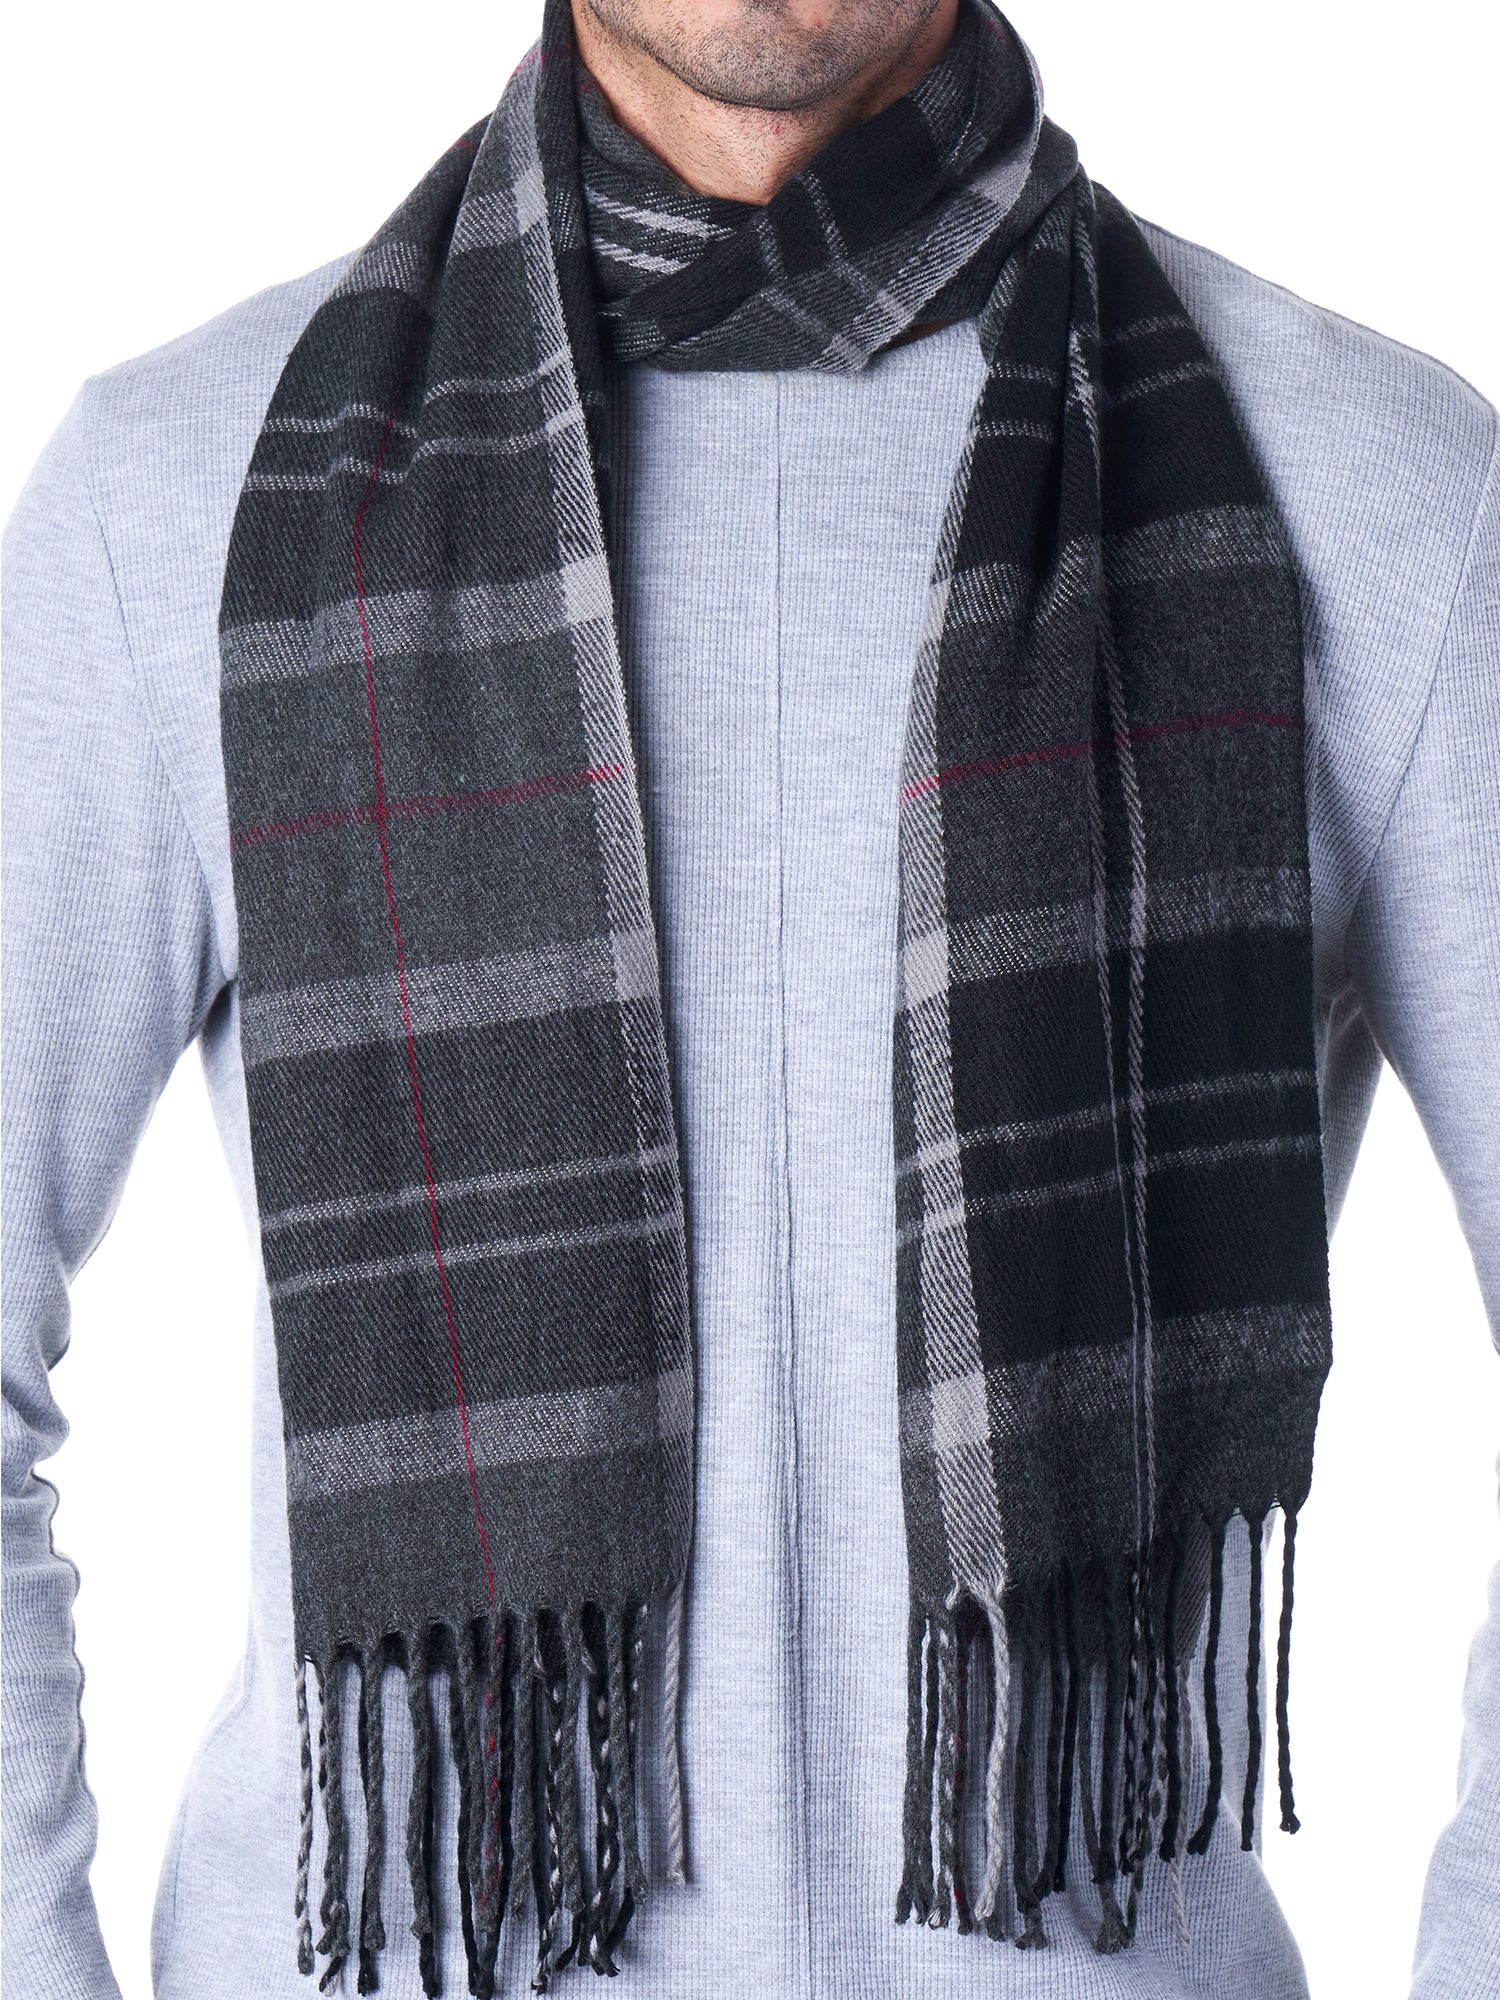 Hammer-Anvil-Mens-Plaid-Striped-Scarf-Womens-Winter-Scarves-Cashmere-Soft-Feel thumbnail 33